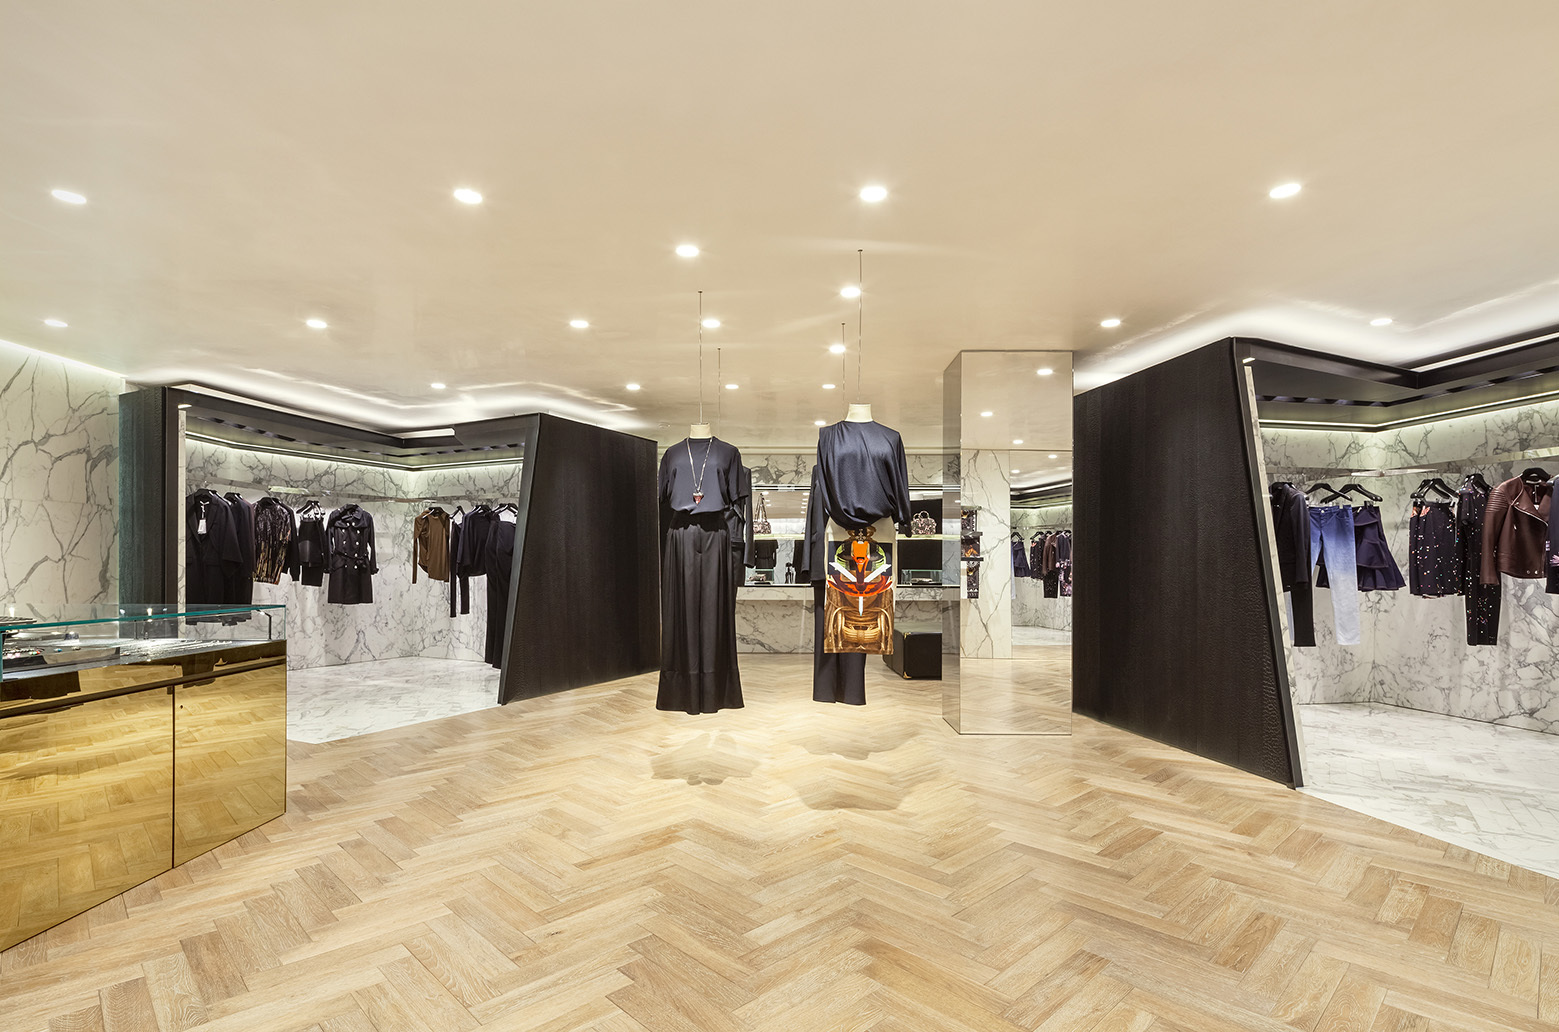 givenchy-flagship-store-in-seoul-piuarch-12